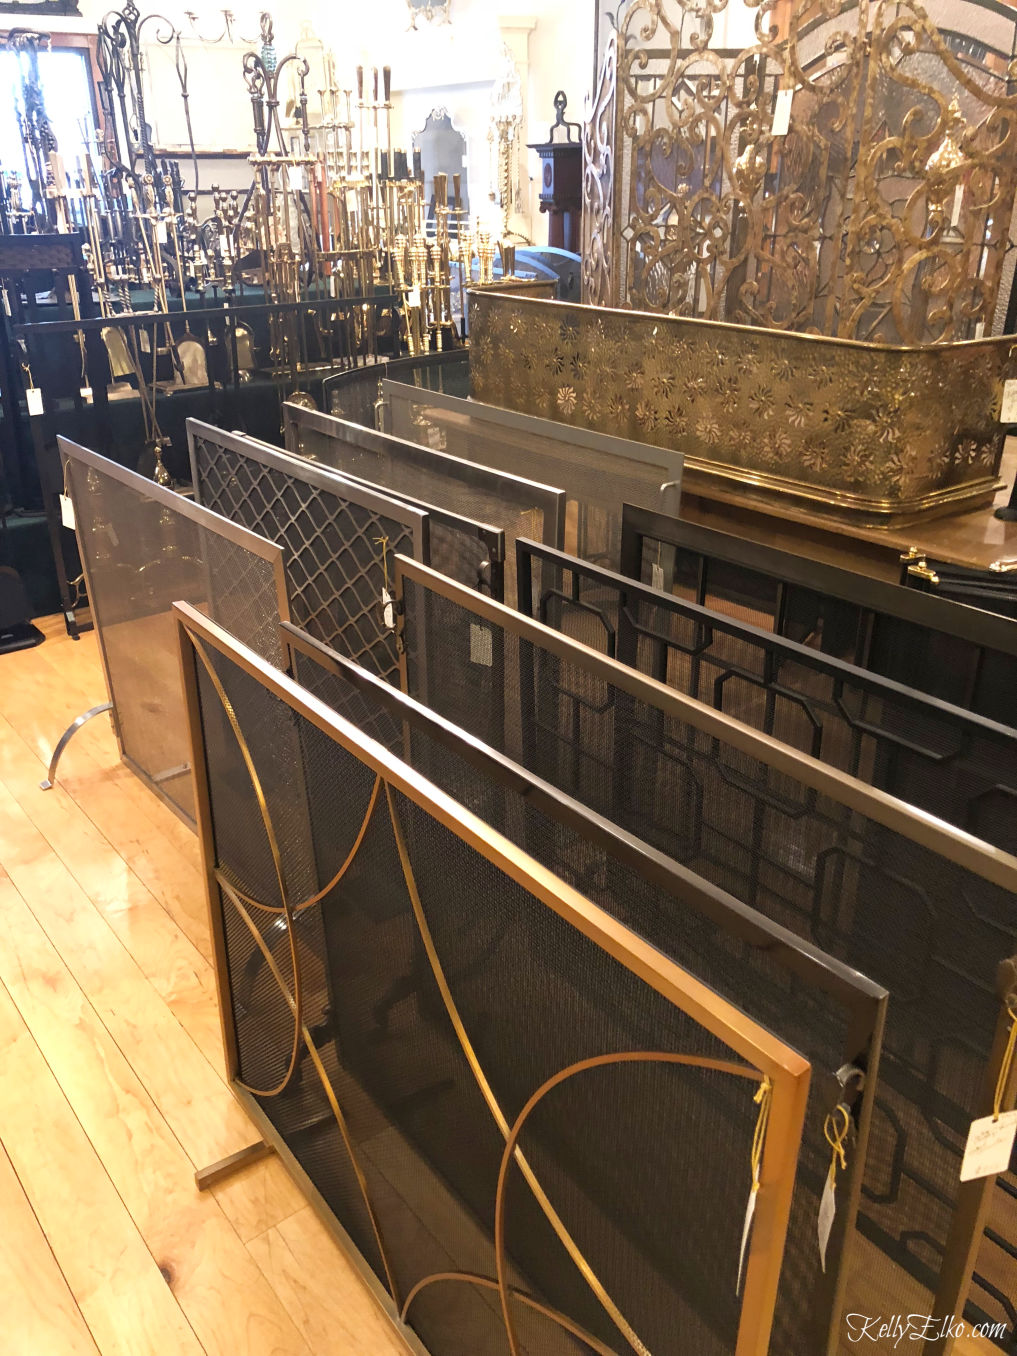 Fireplace screens - so many choices kellyelko.com